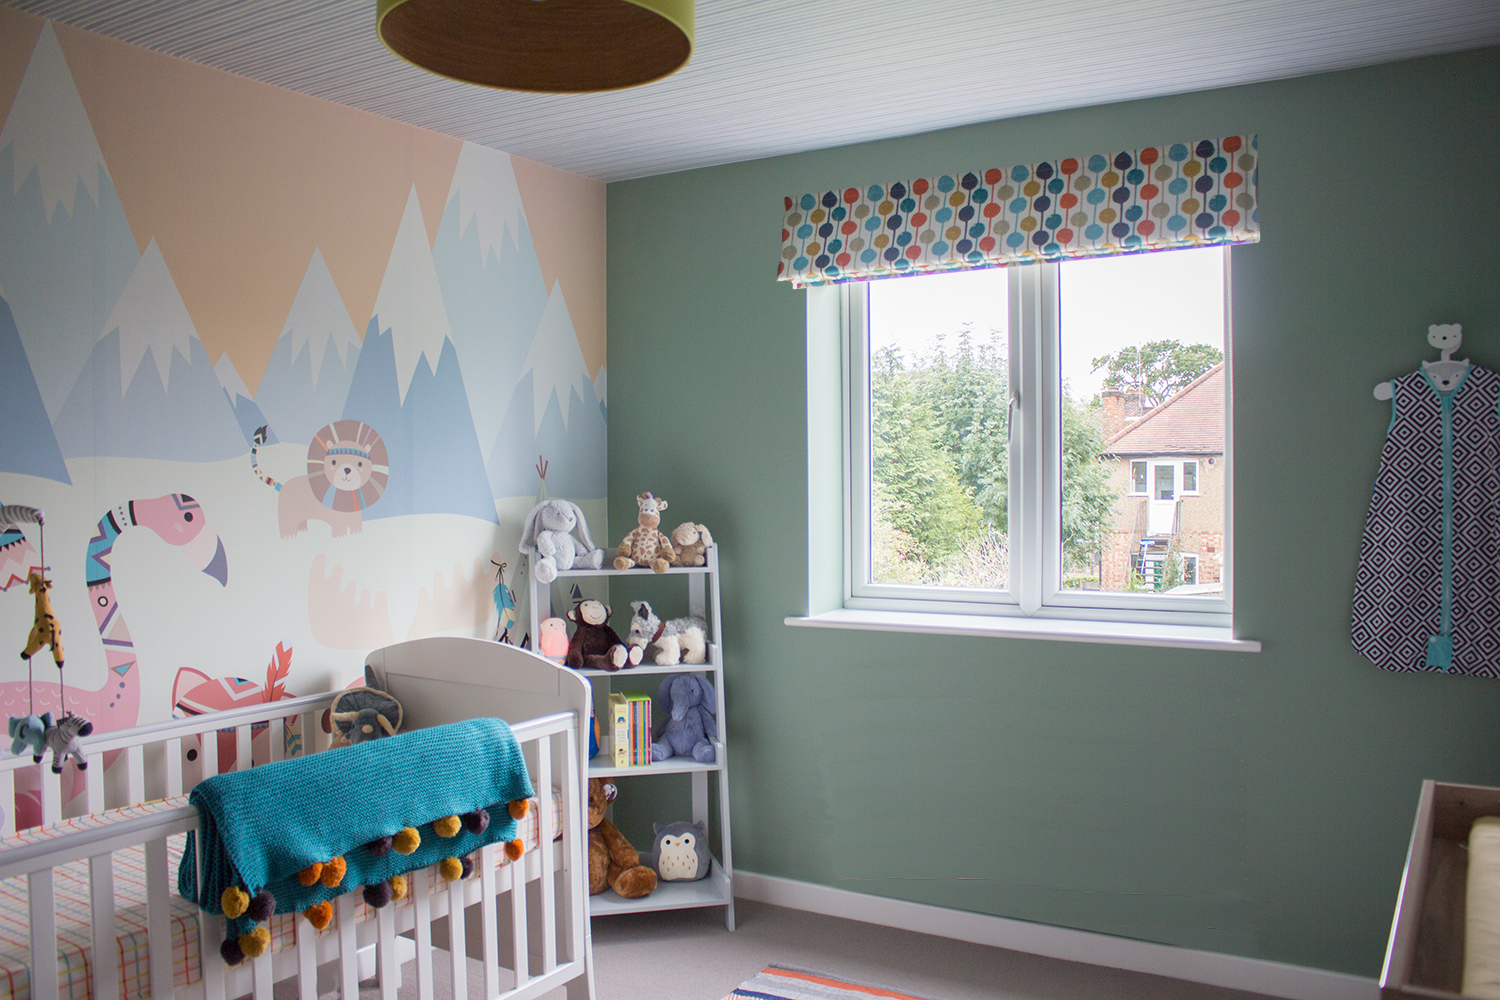 A photo of the new nursery with wallpaper mural